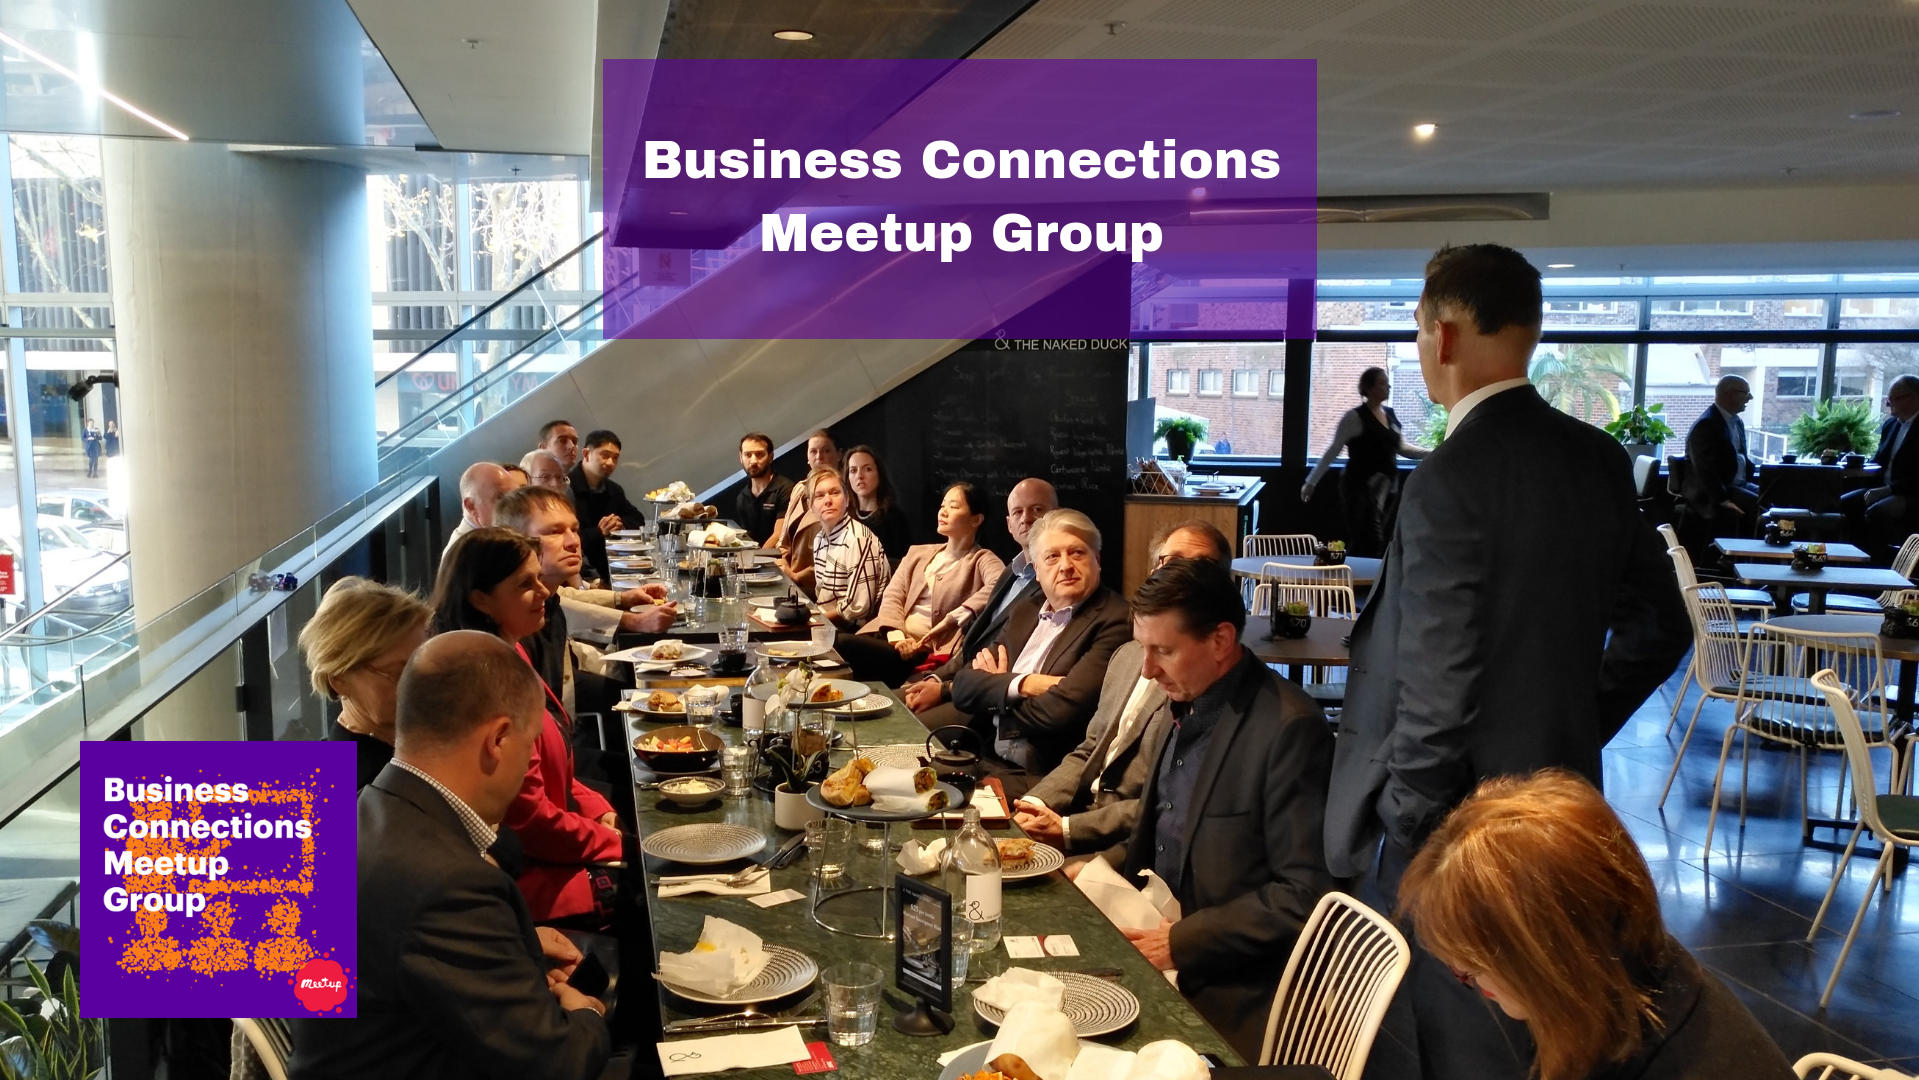 Business Connections Meetup Group